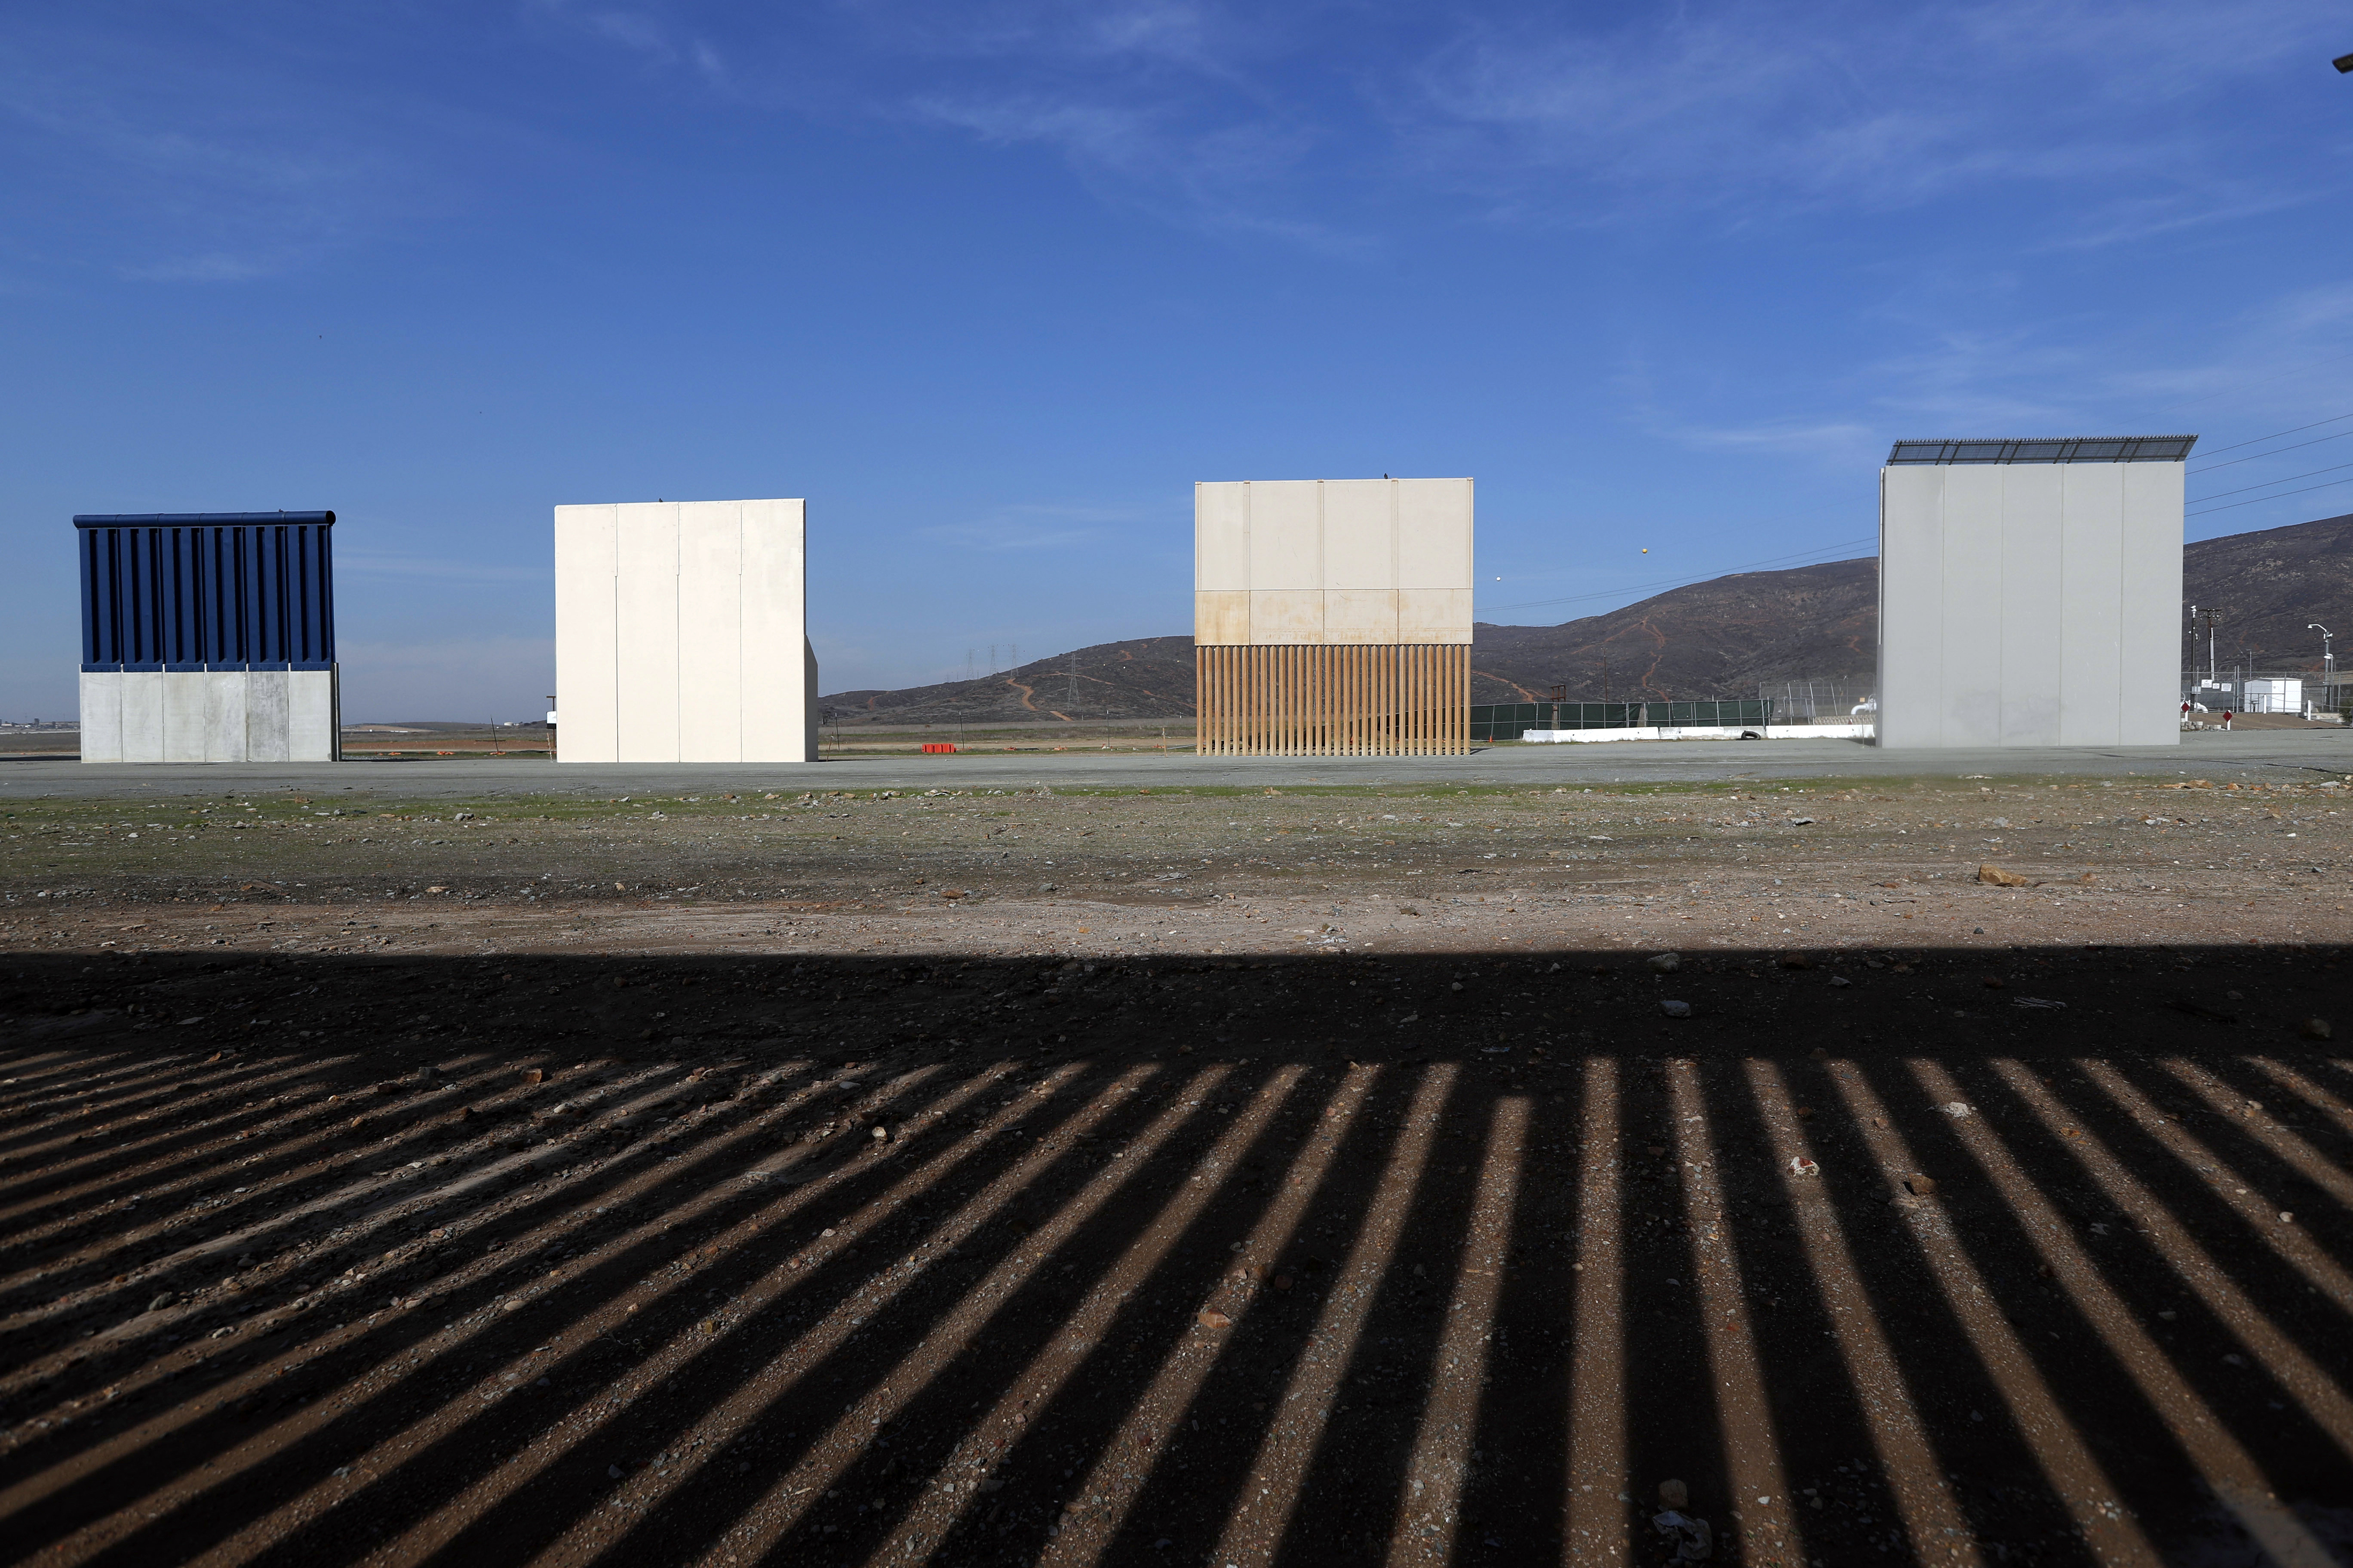 In this Wednesday, Dec. 12, 2018, file photo, border wall prototypes stand in San Diego near the Mexico-U.S. border, seen from Tijuana, Mexico, where the current wall casts a shadow in the foreground. Customs and Border Protection said Friday, Feb. 22, 2019, President Trump's eight border-wall prototypes will be torn down to make way for a secondary barrier separating California from Mexico.